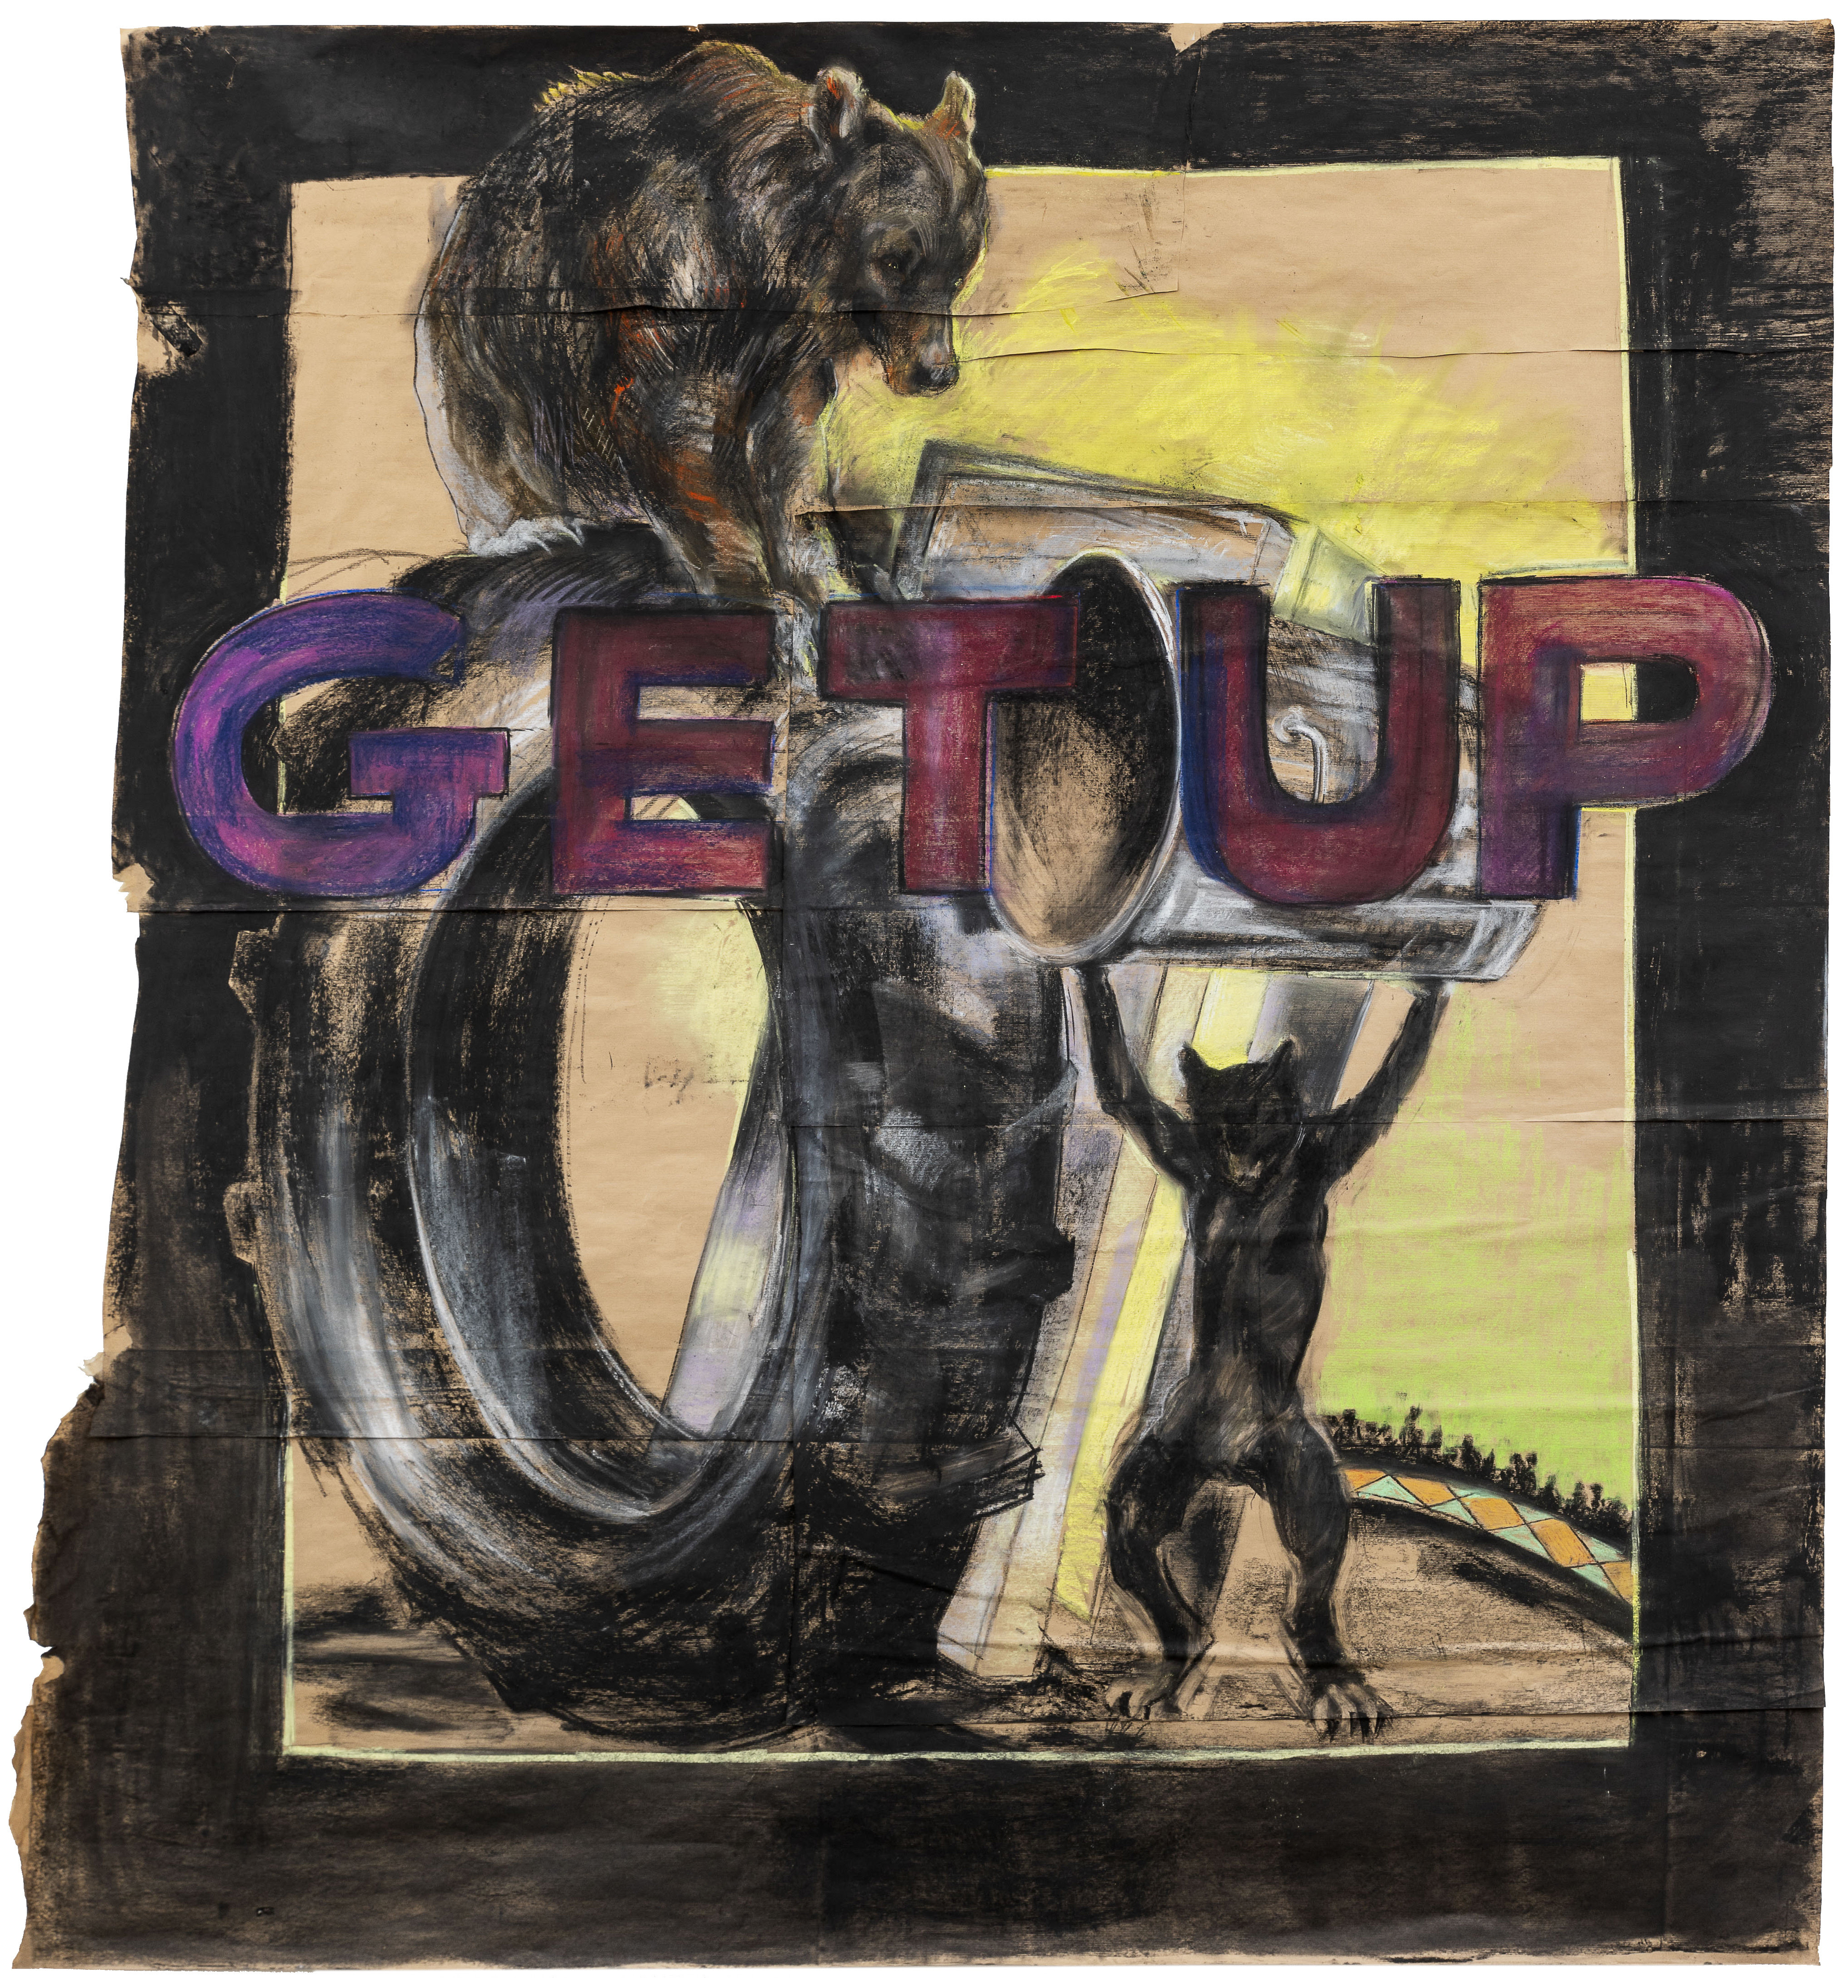 fine art work on paper showing a black cat holding a garbage can above its headand a bear on a tire and read GET UP